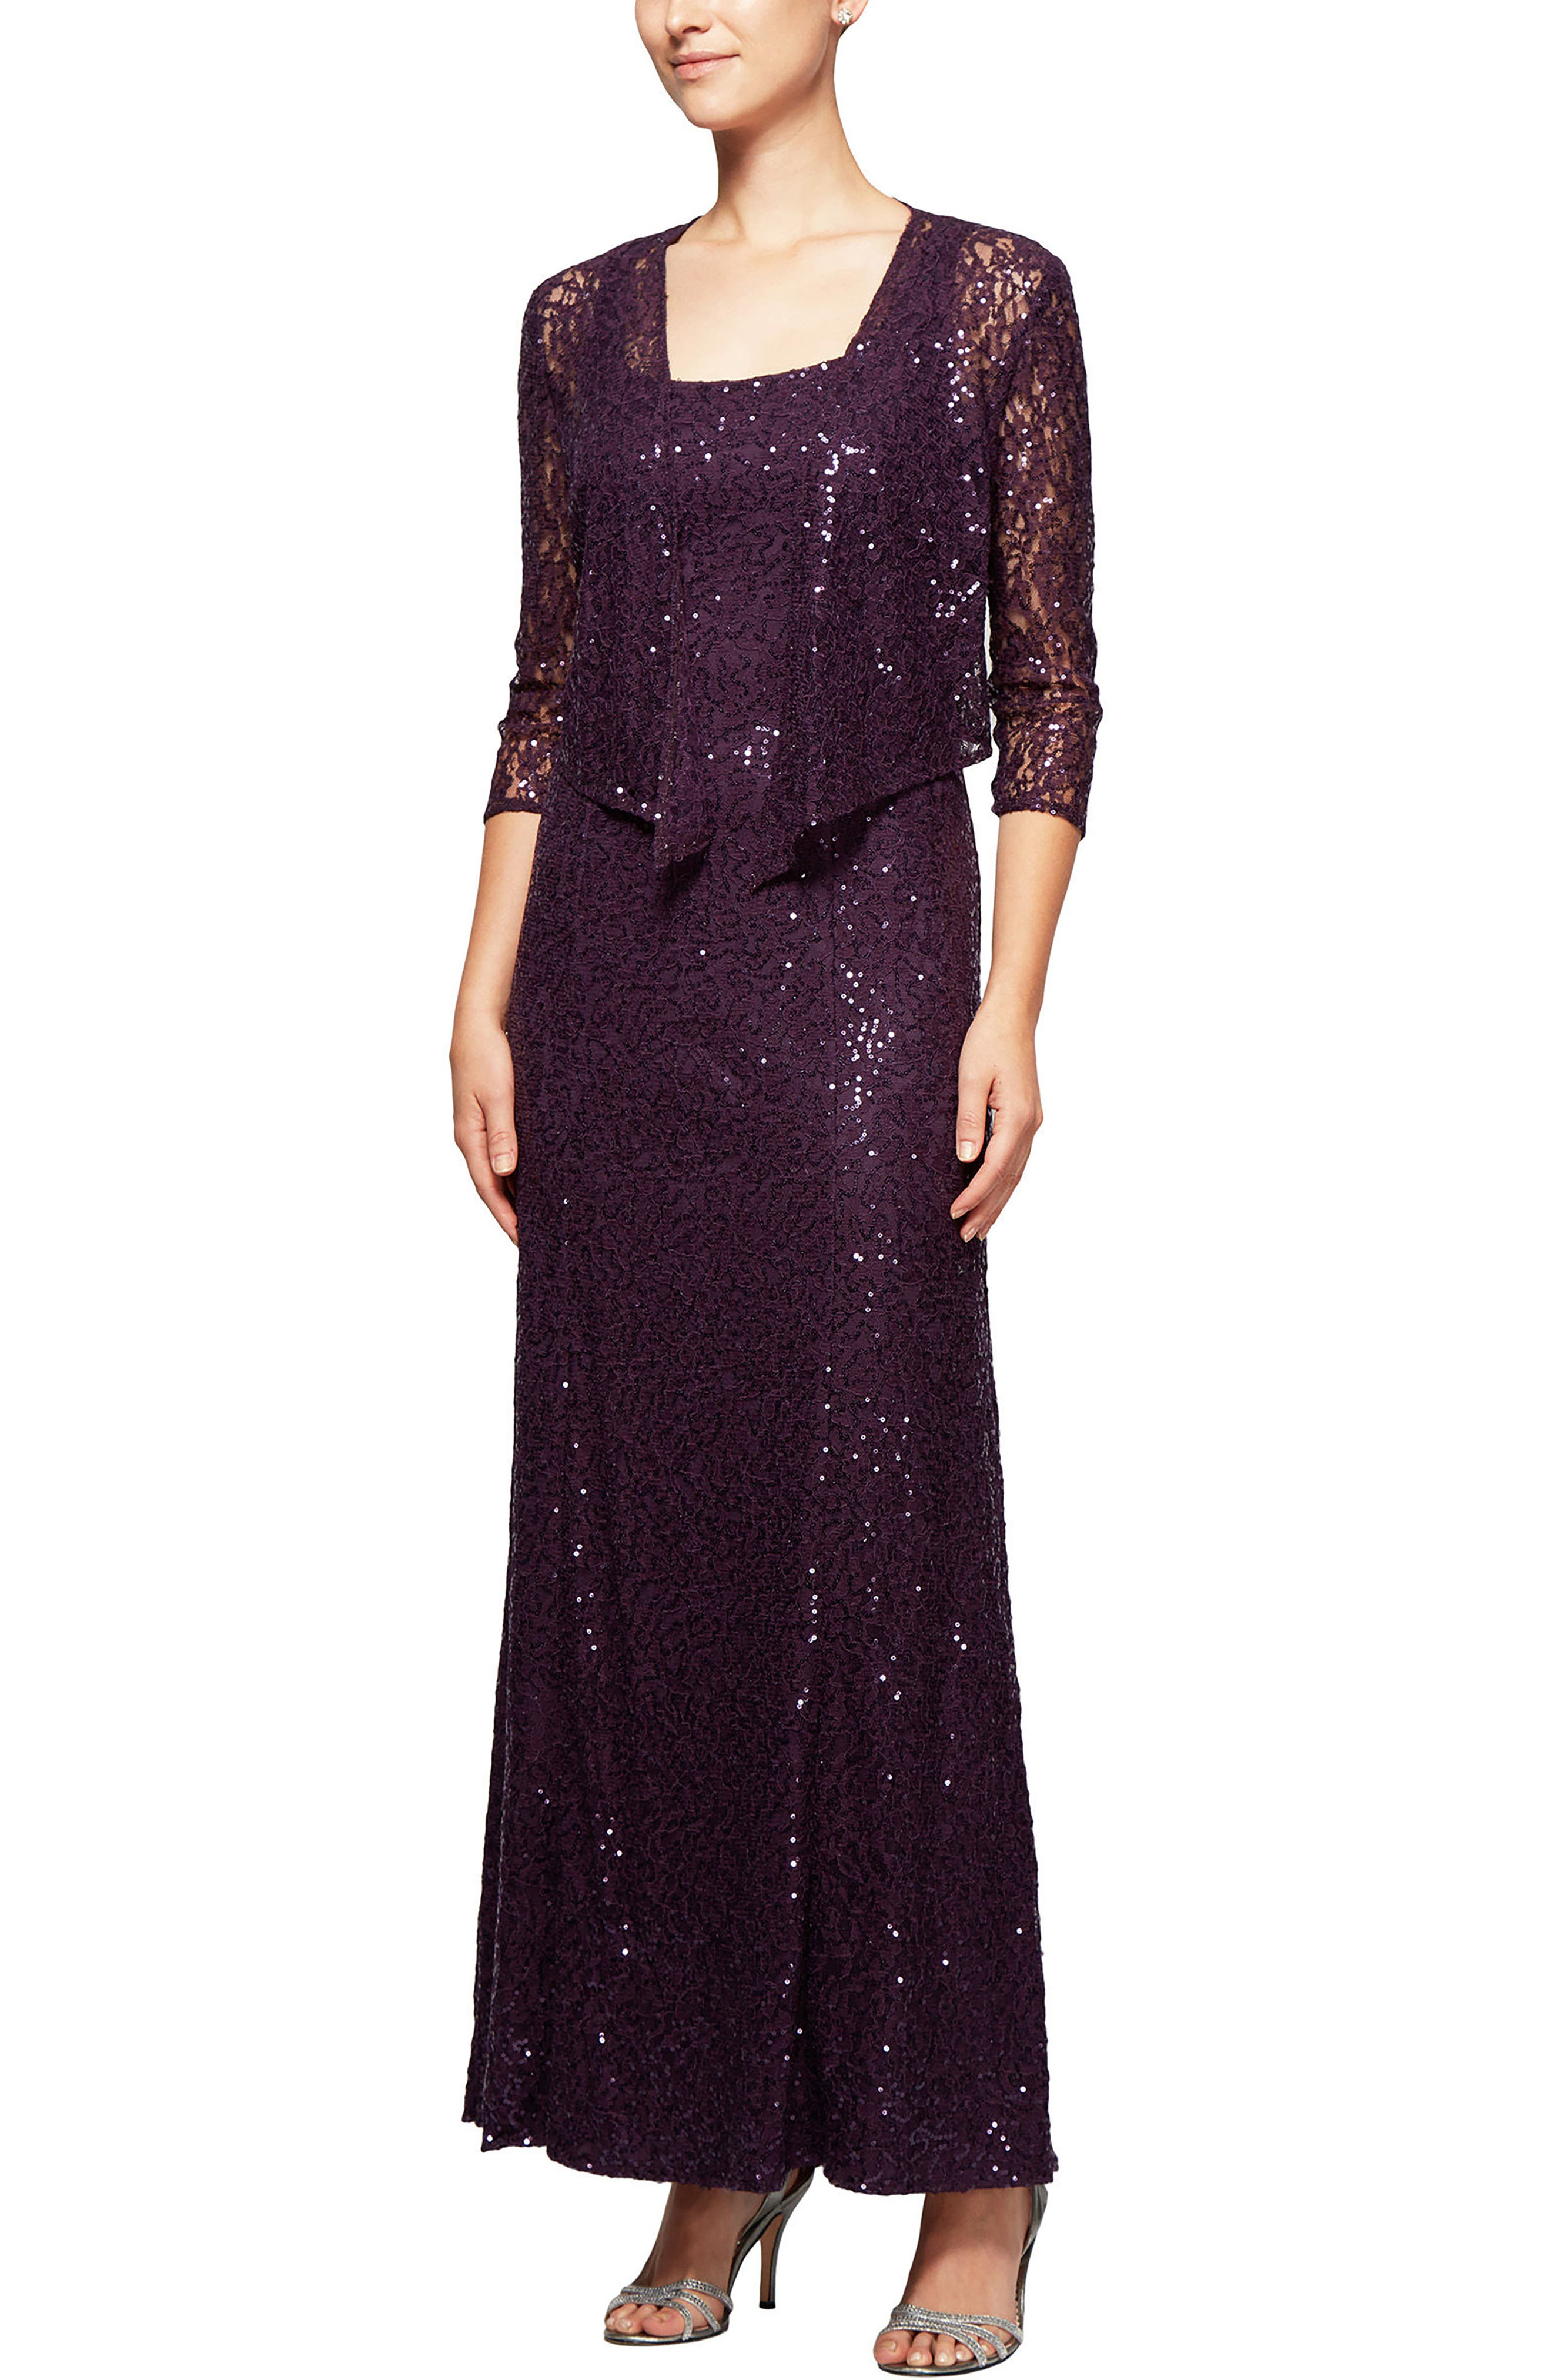 Alternate Image 1 Selected - Alex Evenings Sequin Lace Long Dress with Jacket